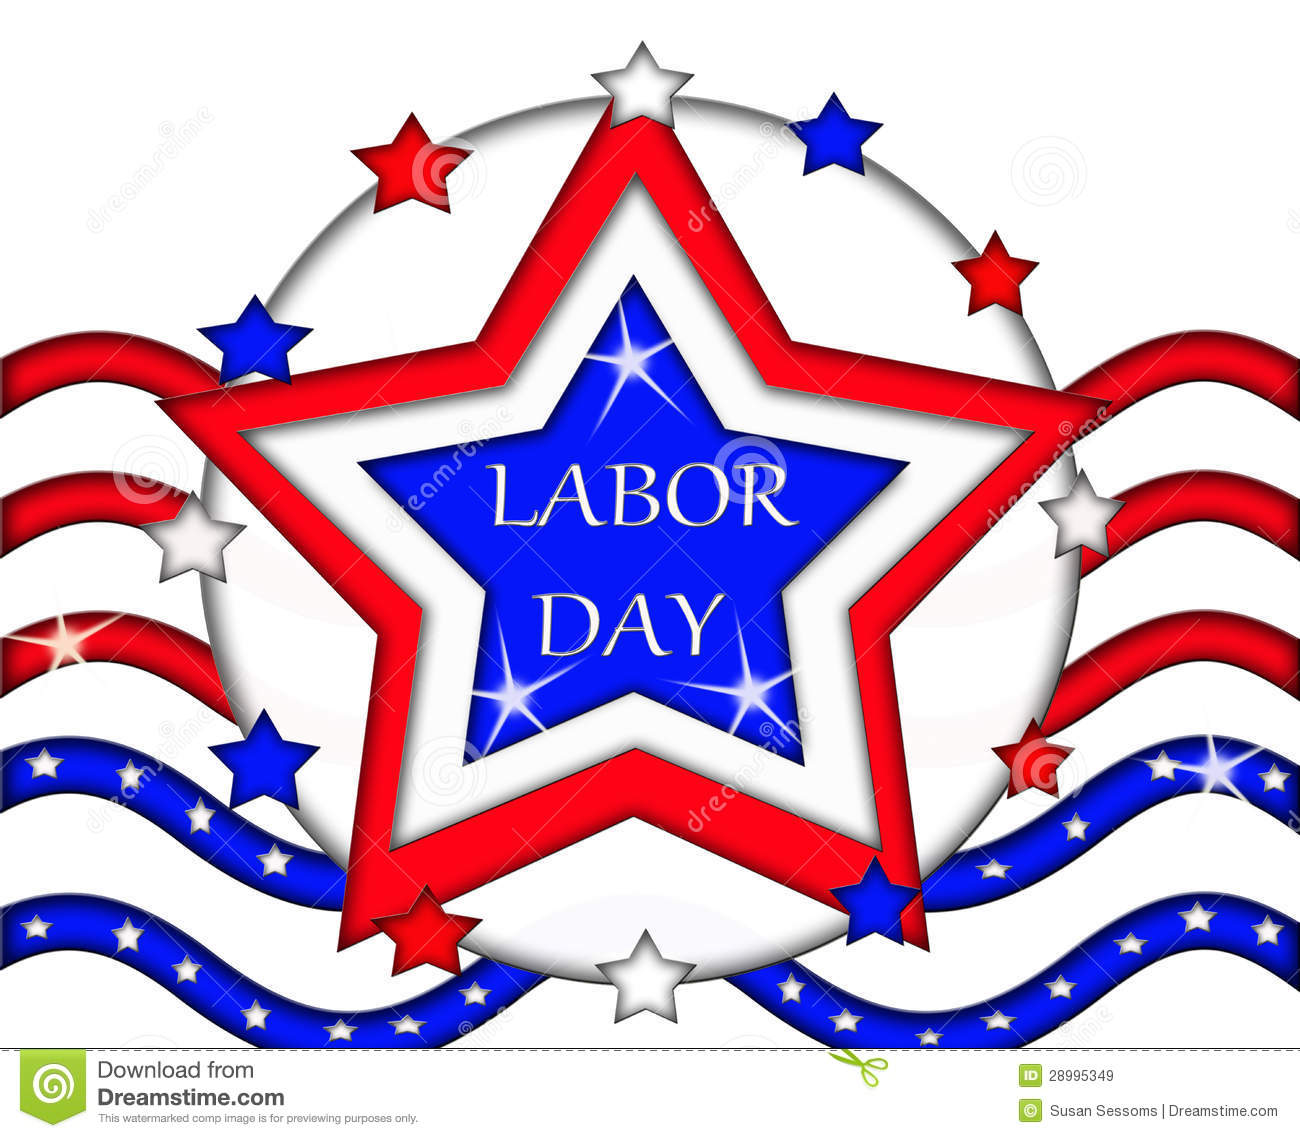 labor day flag sign banner clipart panda free clipart images rh clipartpanda com labor day clip art black and white labor day clip art free